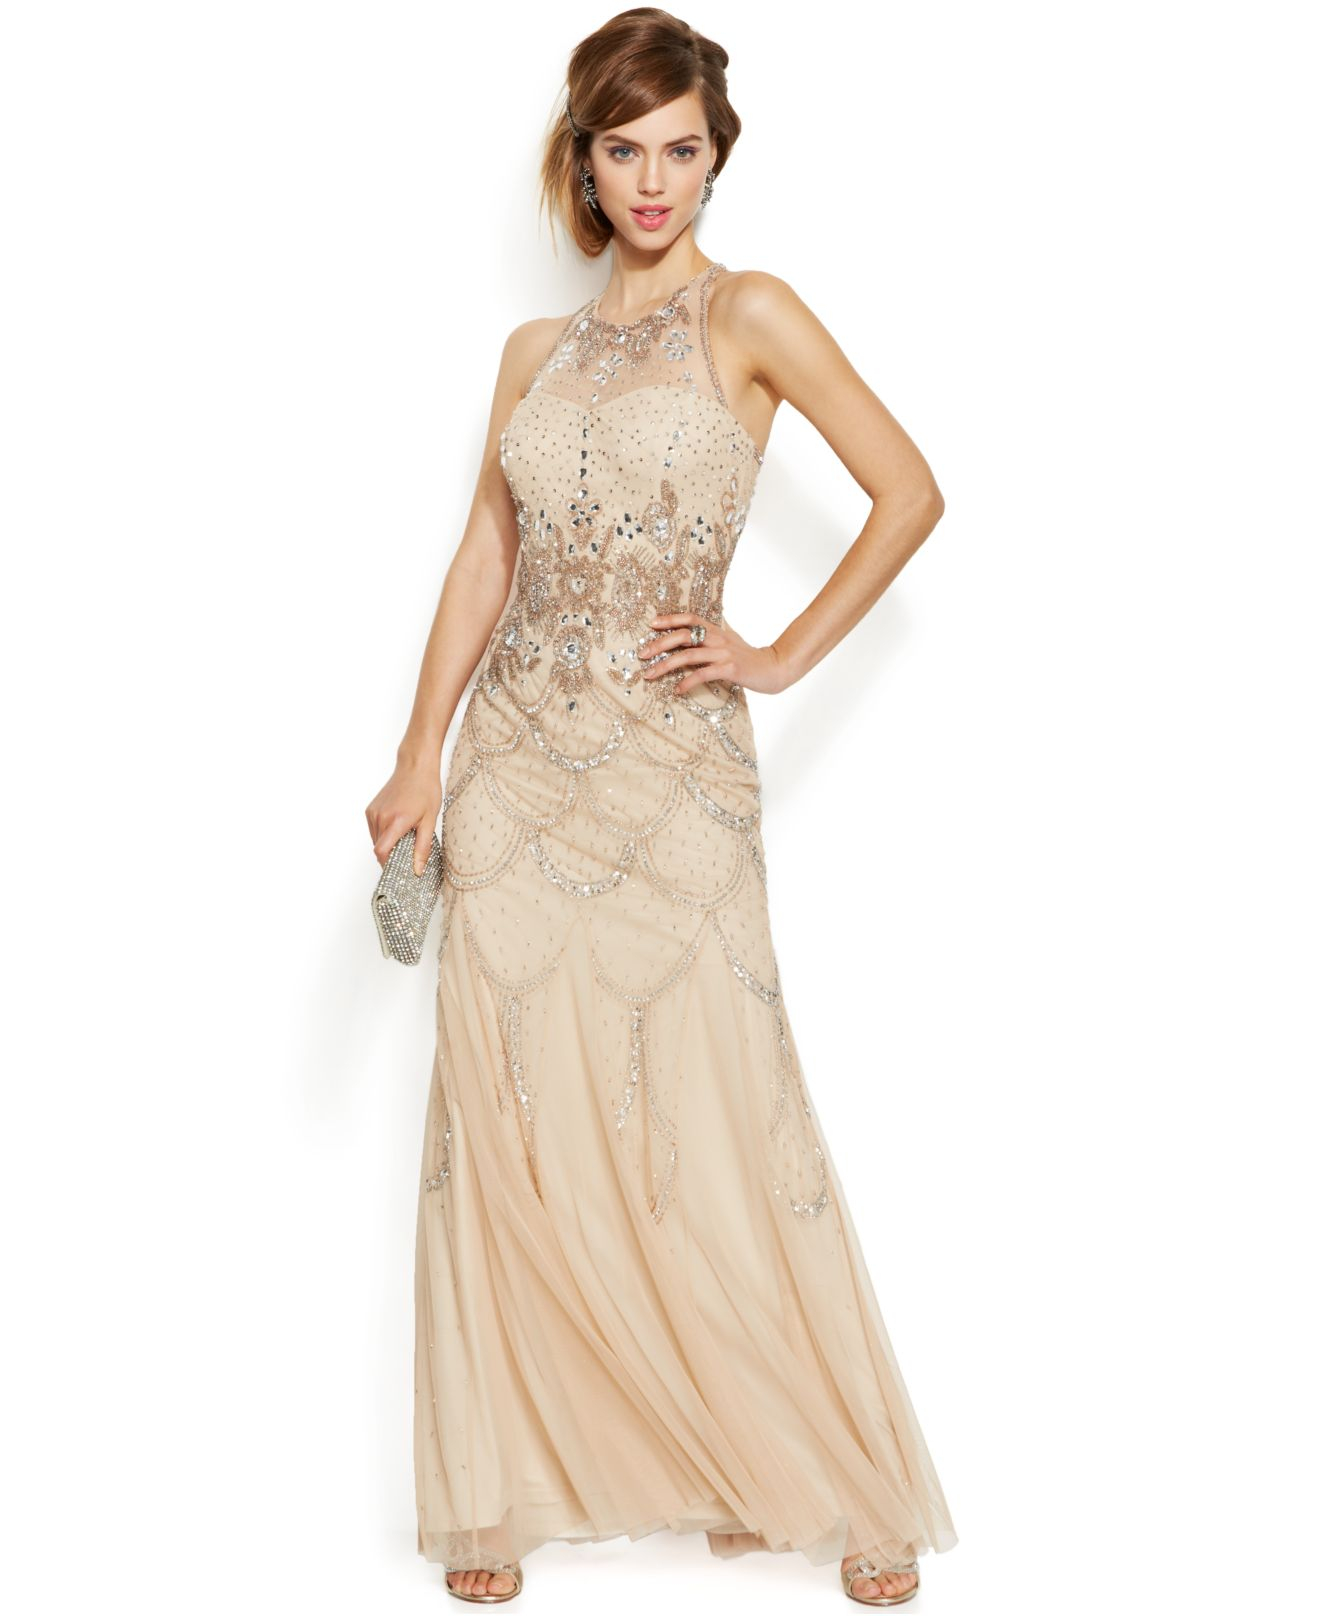 Macys Prom Dresses - Gown And Dress Gallery